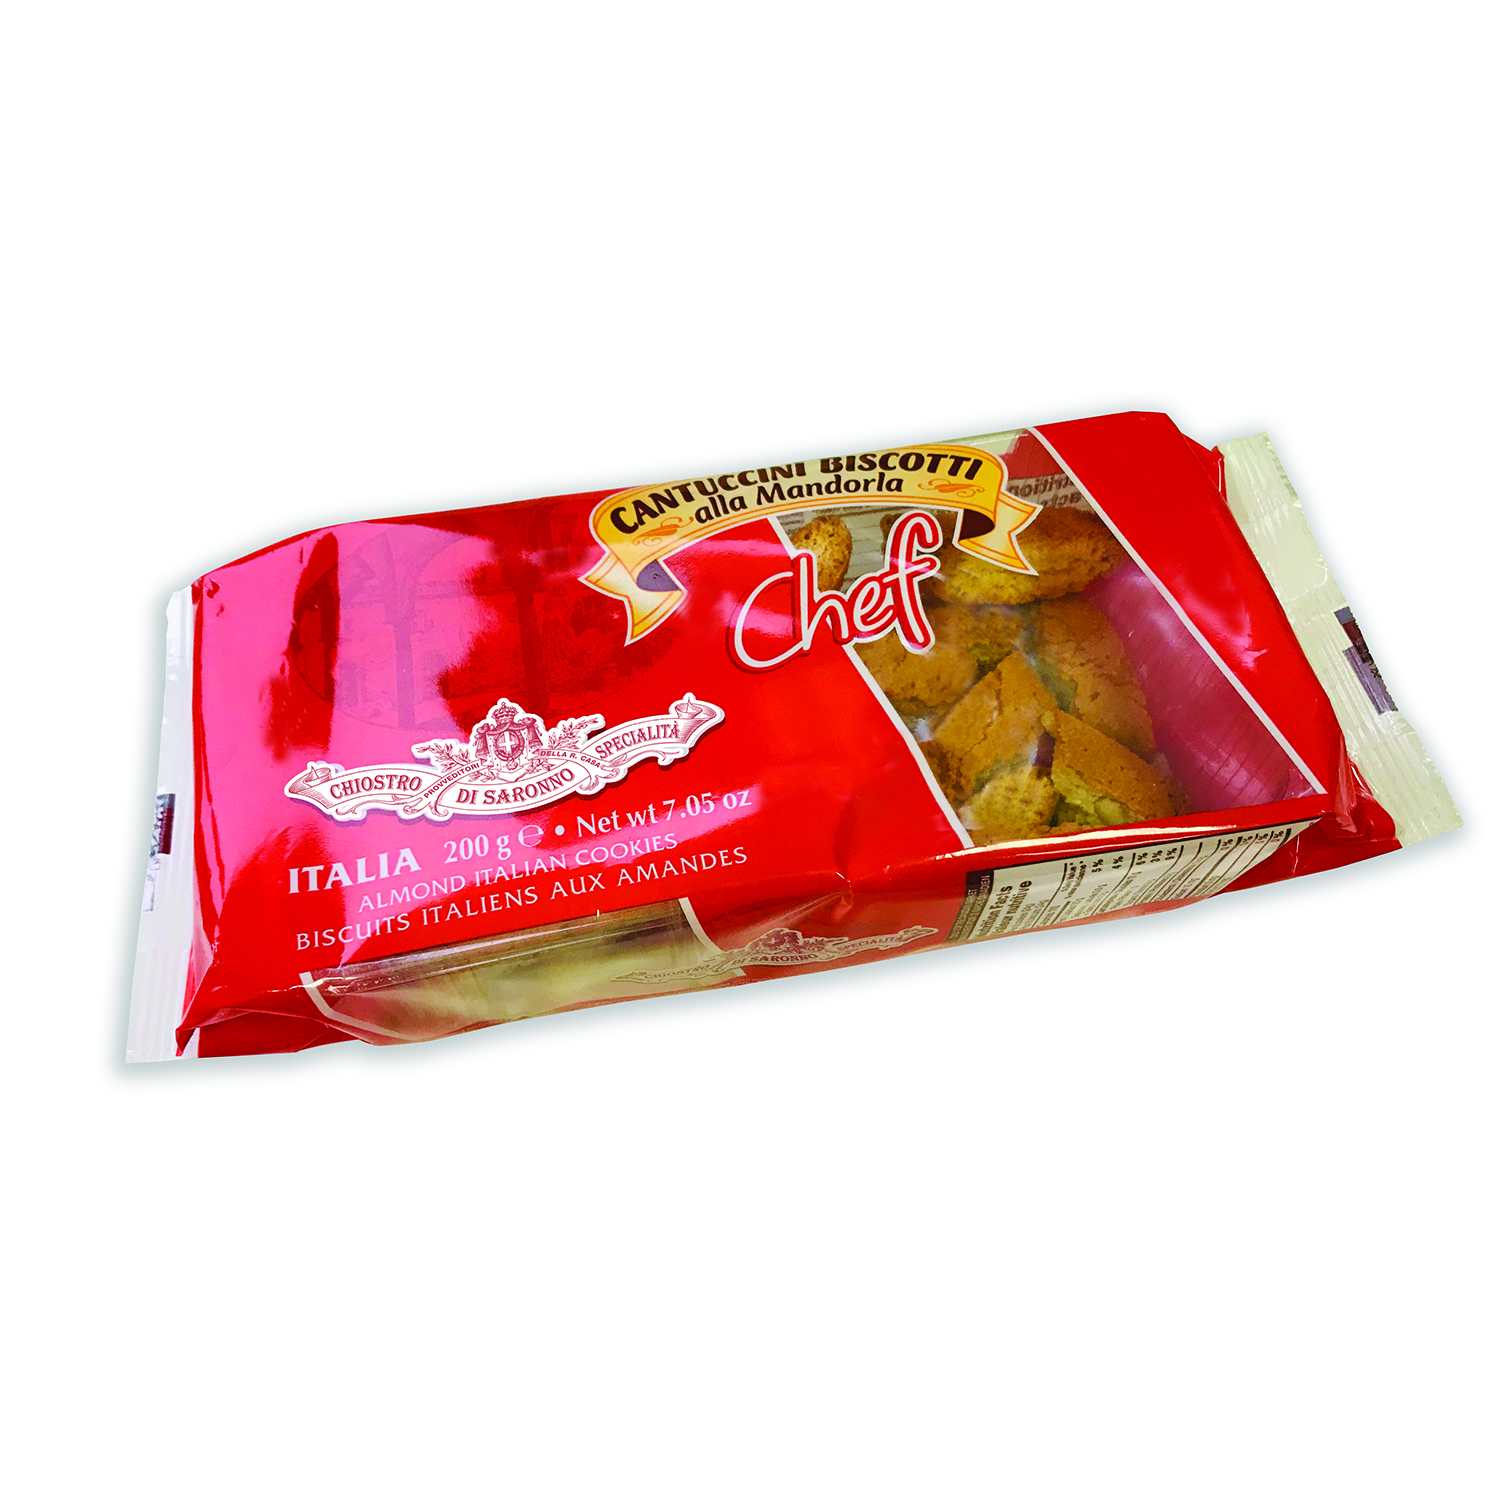 Cantucci biscuits tasty snack/ dessert/Confectionary